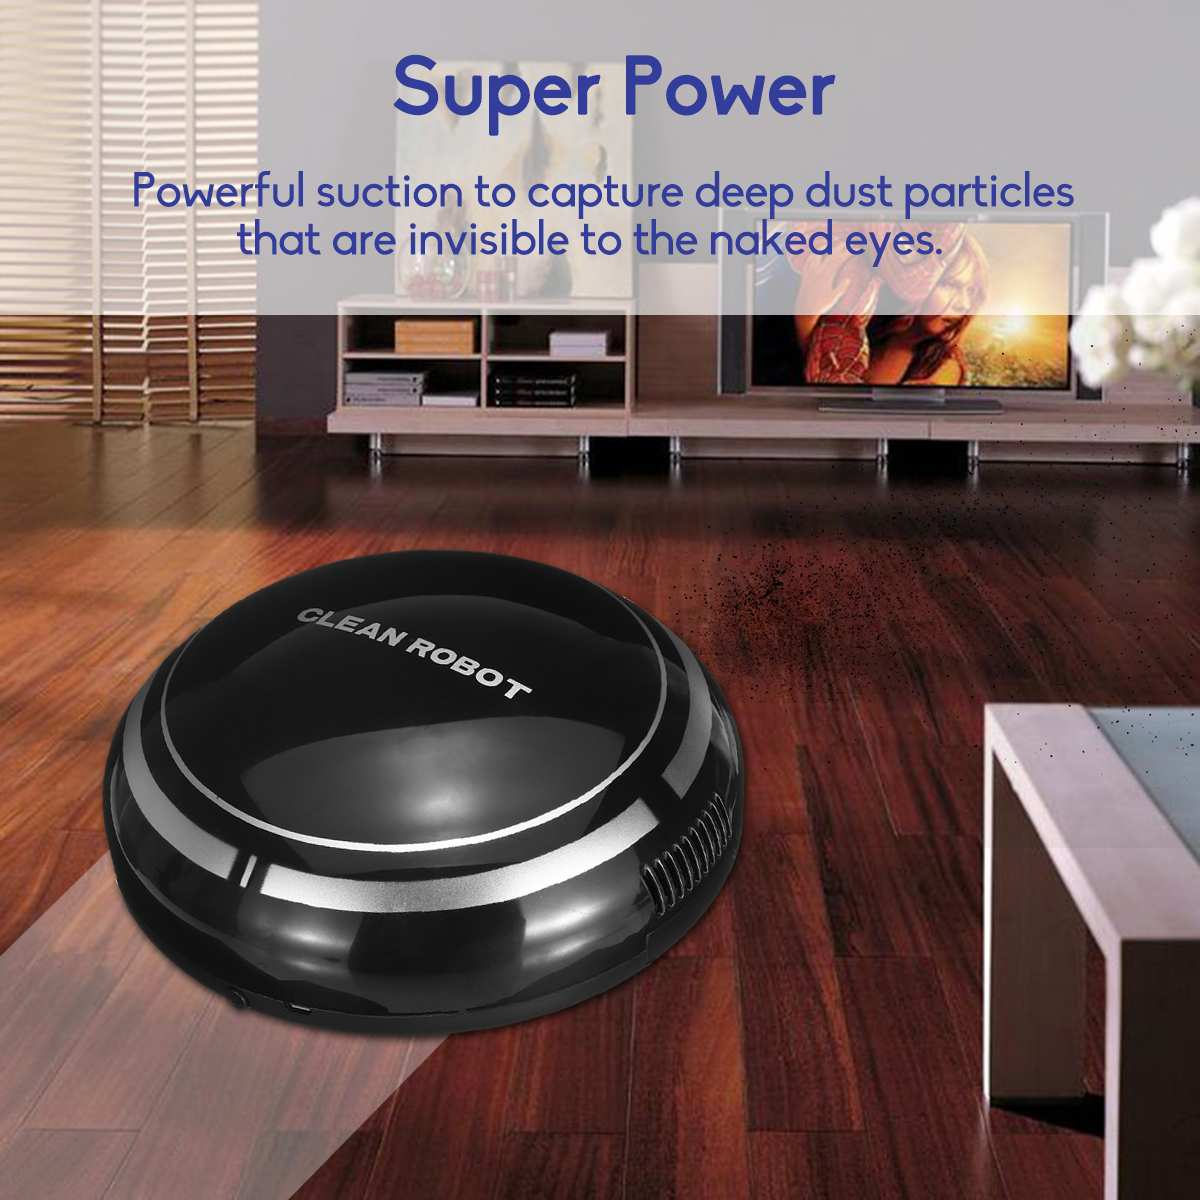 Smart Automatic Robot Vacuum Cleaning Machine Intelligent Floor Sweeping Dust Catcher Carpet Cleaner For Home Automatic Smart Automatic Robot Vacuum Cleaning Machine Intelligent Floor Sweeping Dust Catcher Carpet Cleaner For Home Automatic Cleaning